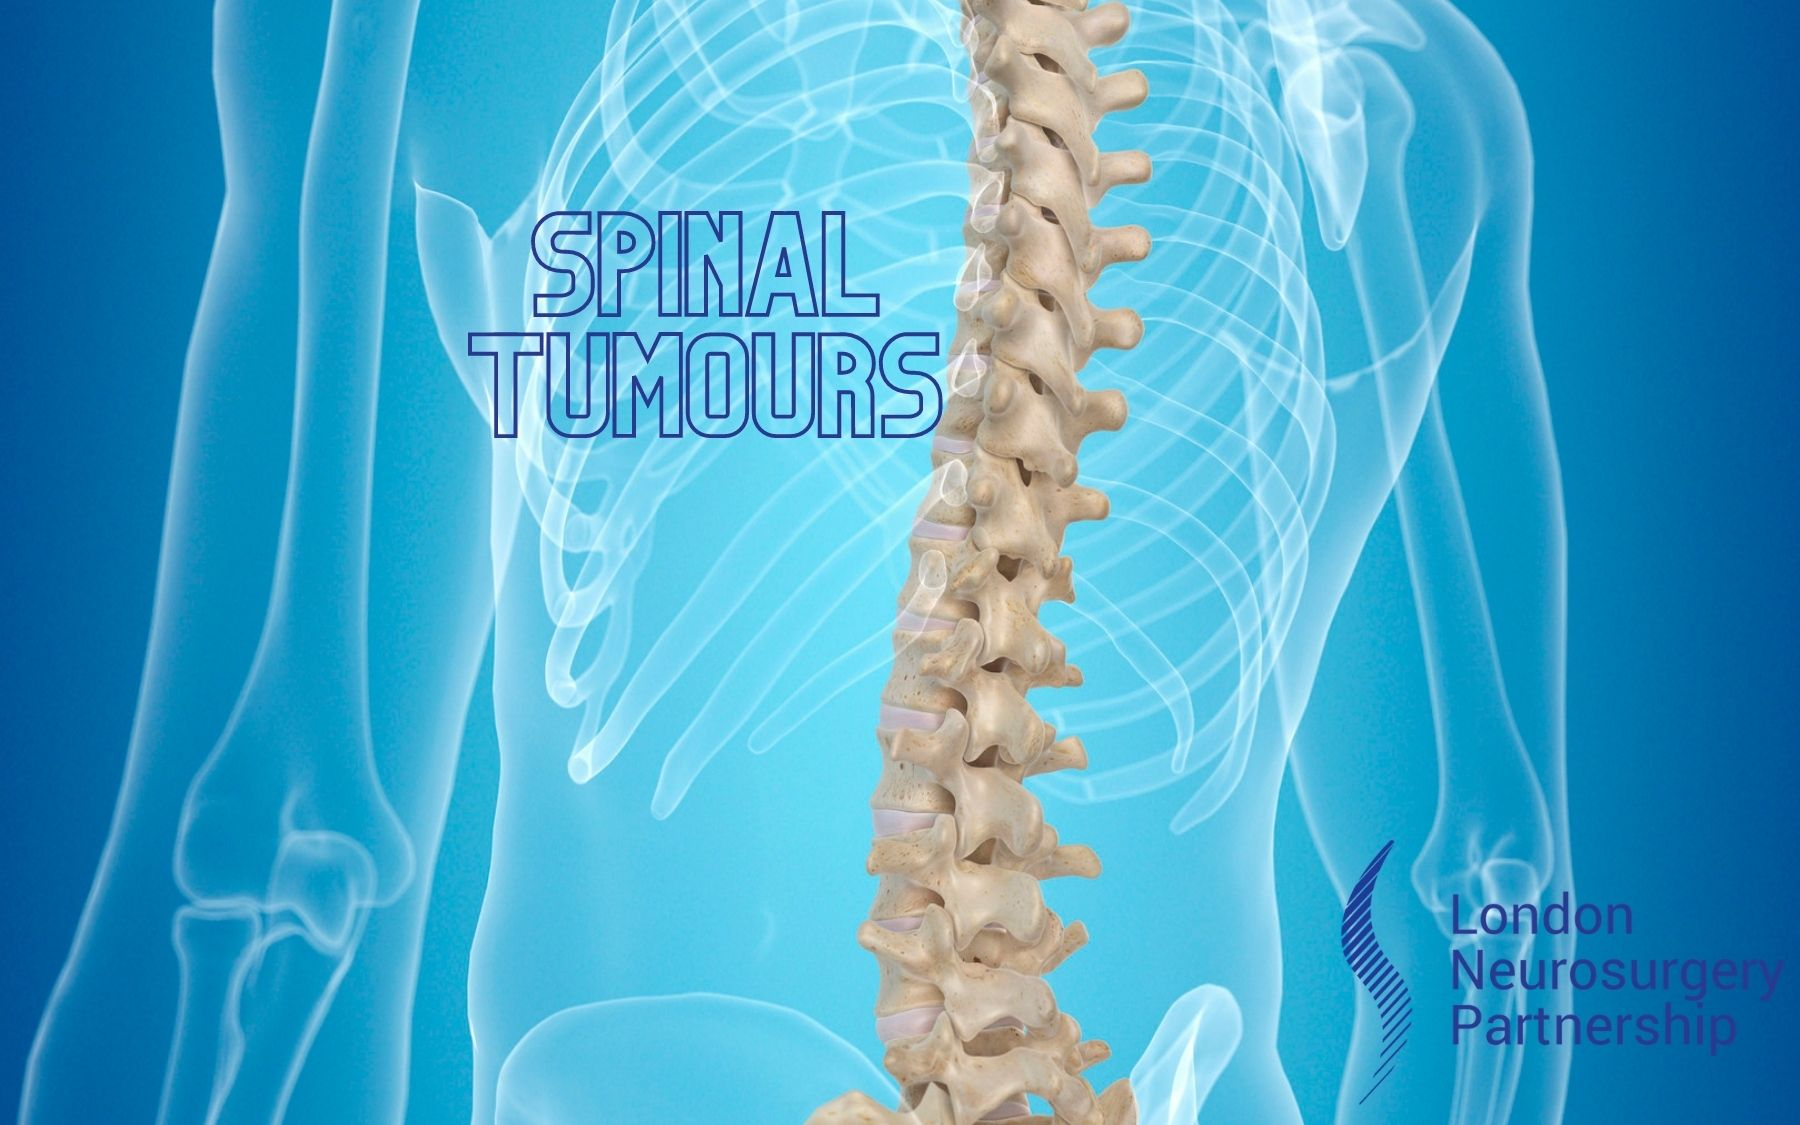 LNP spinal tumours